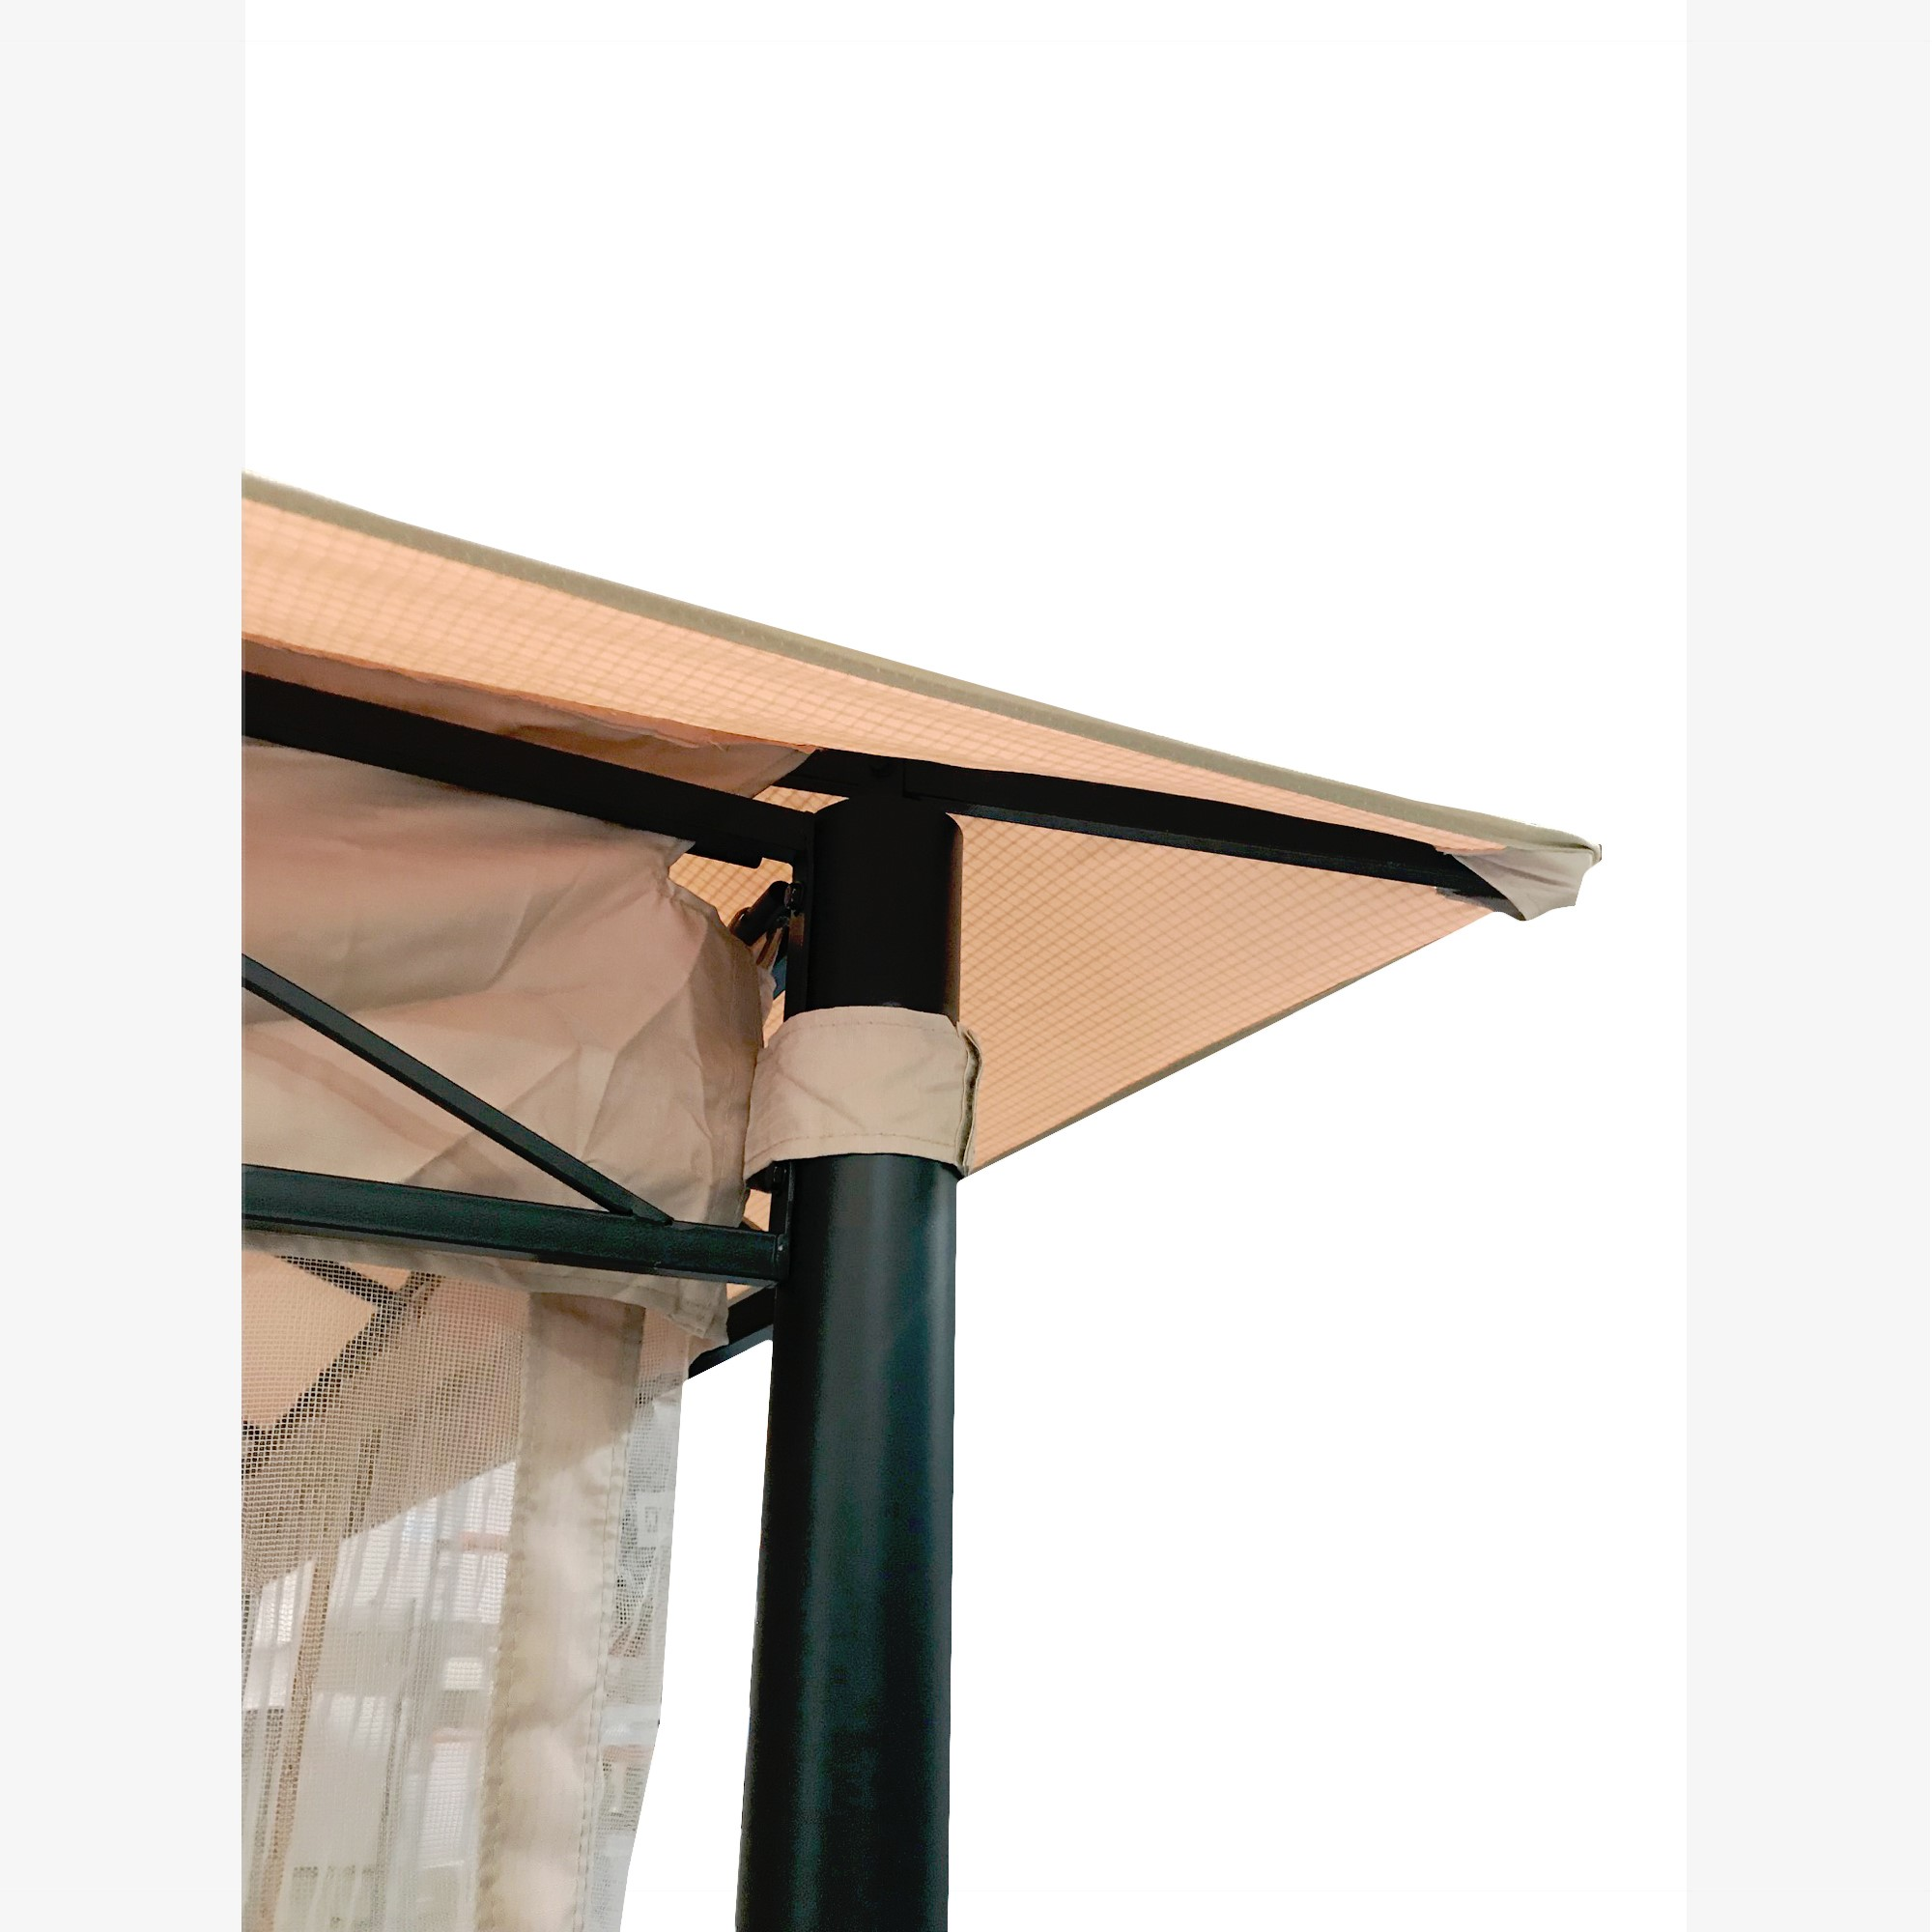 Replacement Canopy For Warm Springs Gazebo Riplock 350